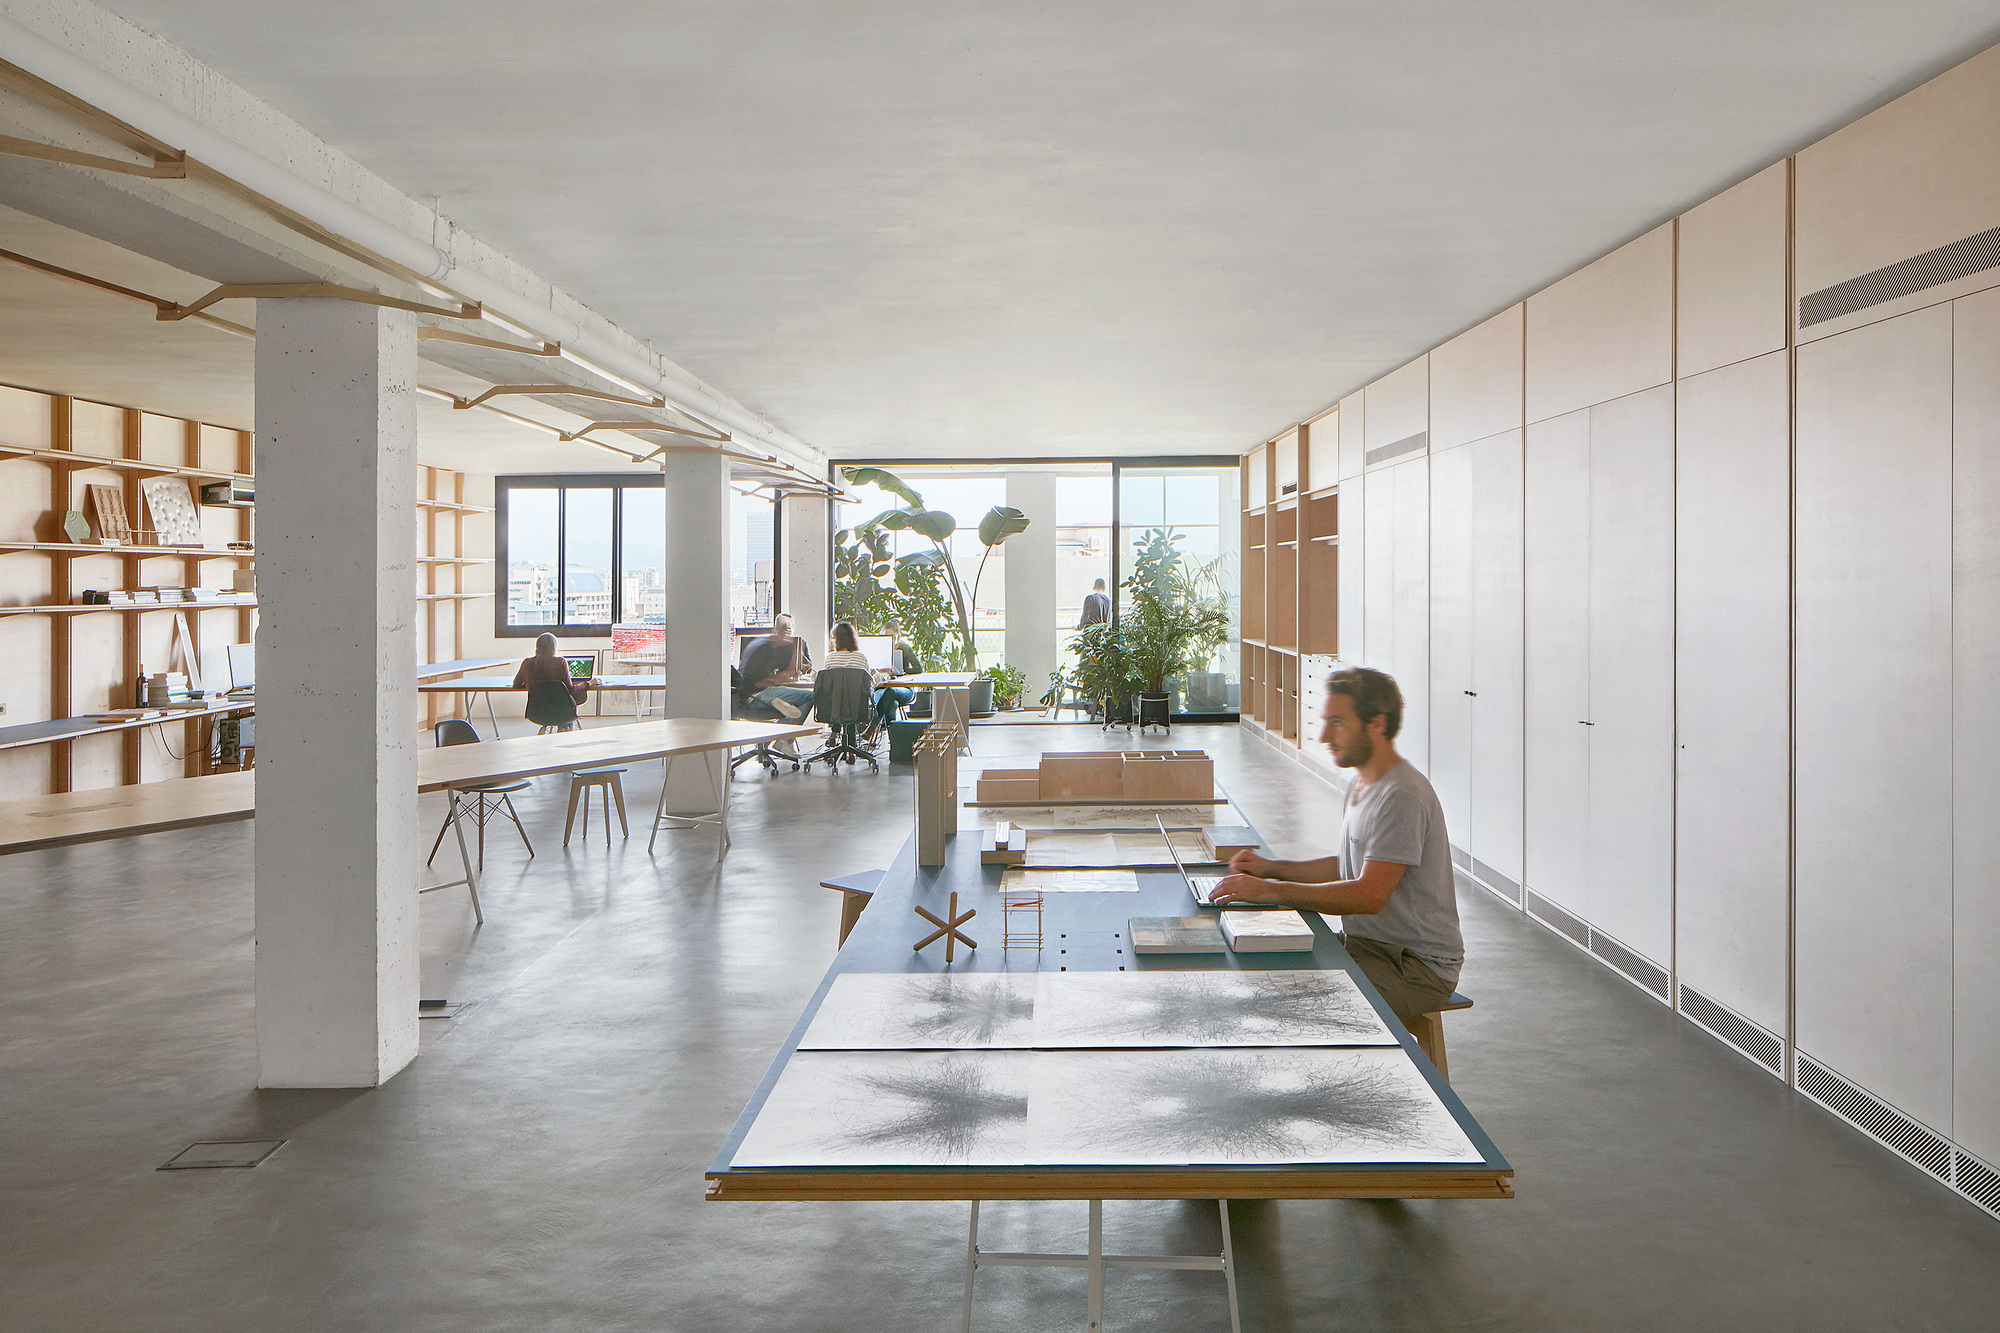 Co working office appareil archdaily for Office design archdaily